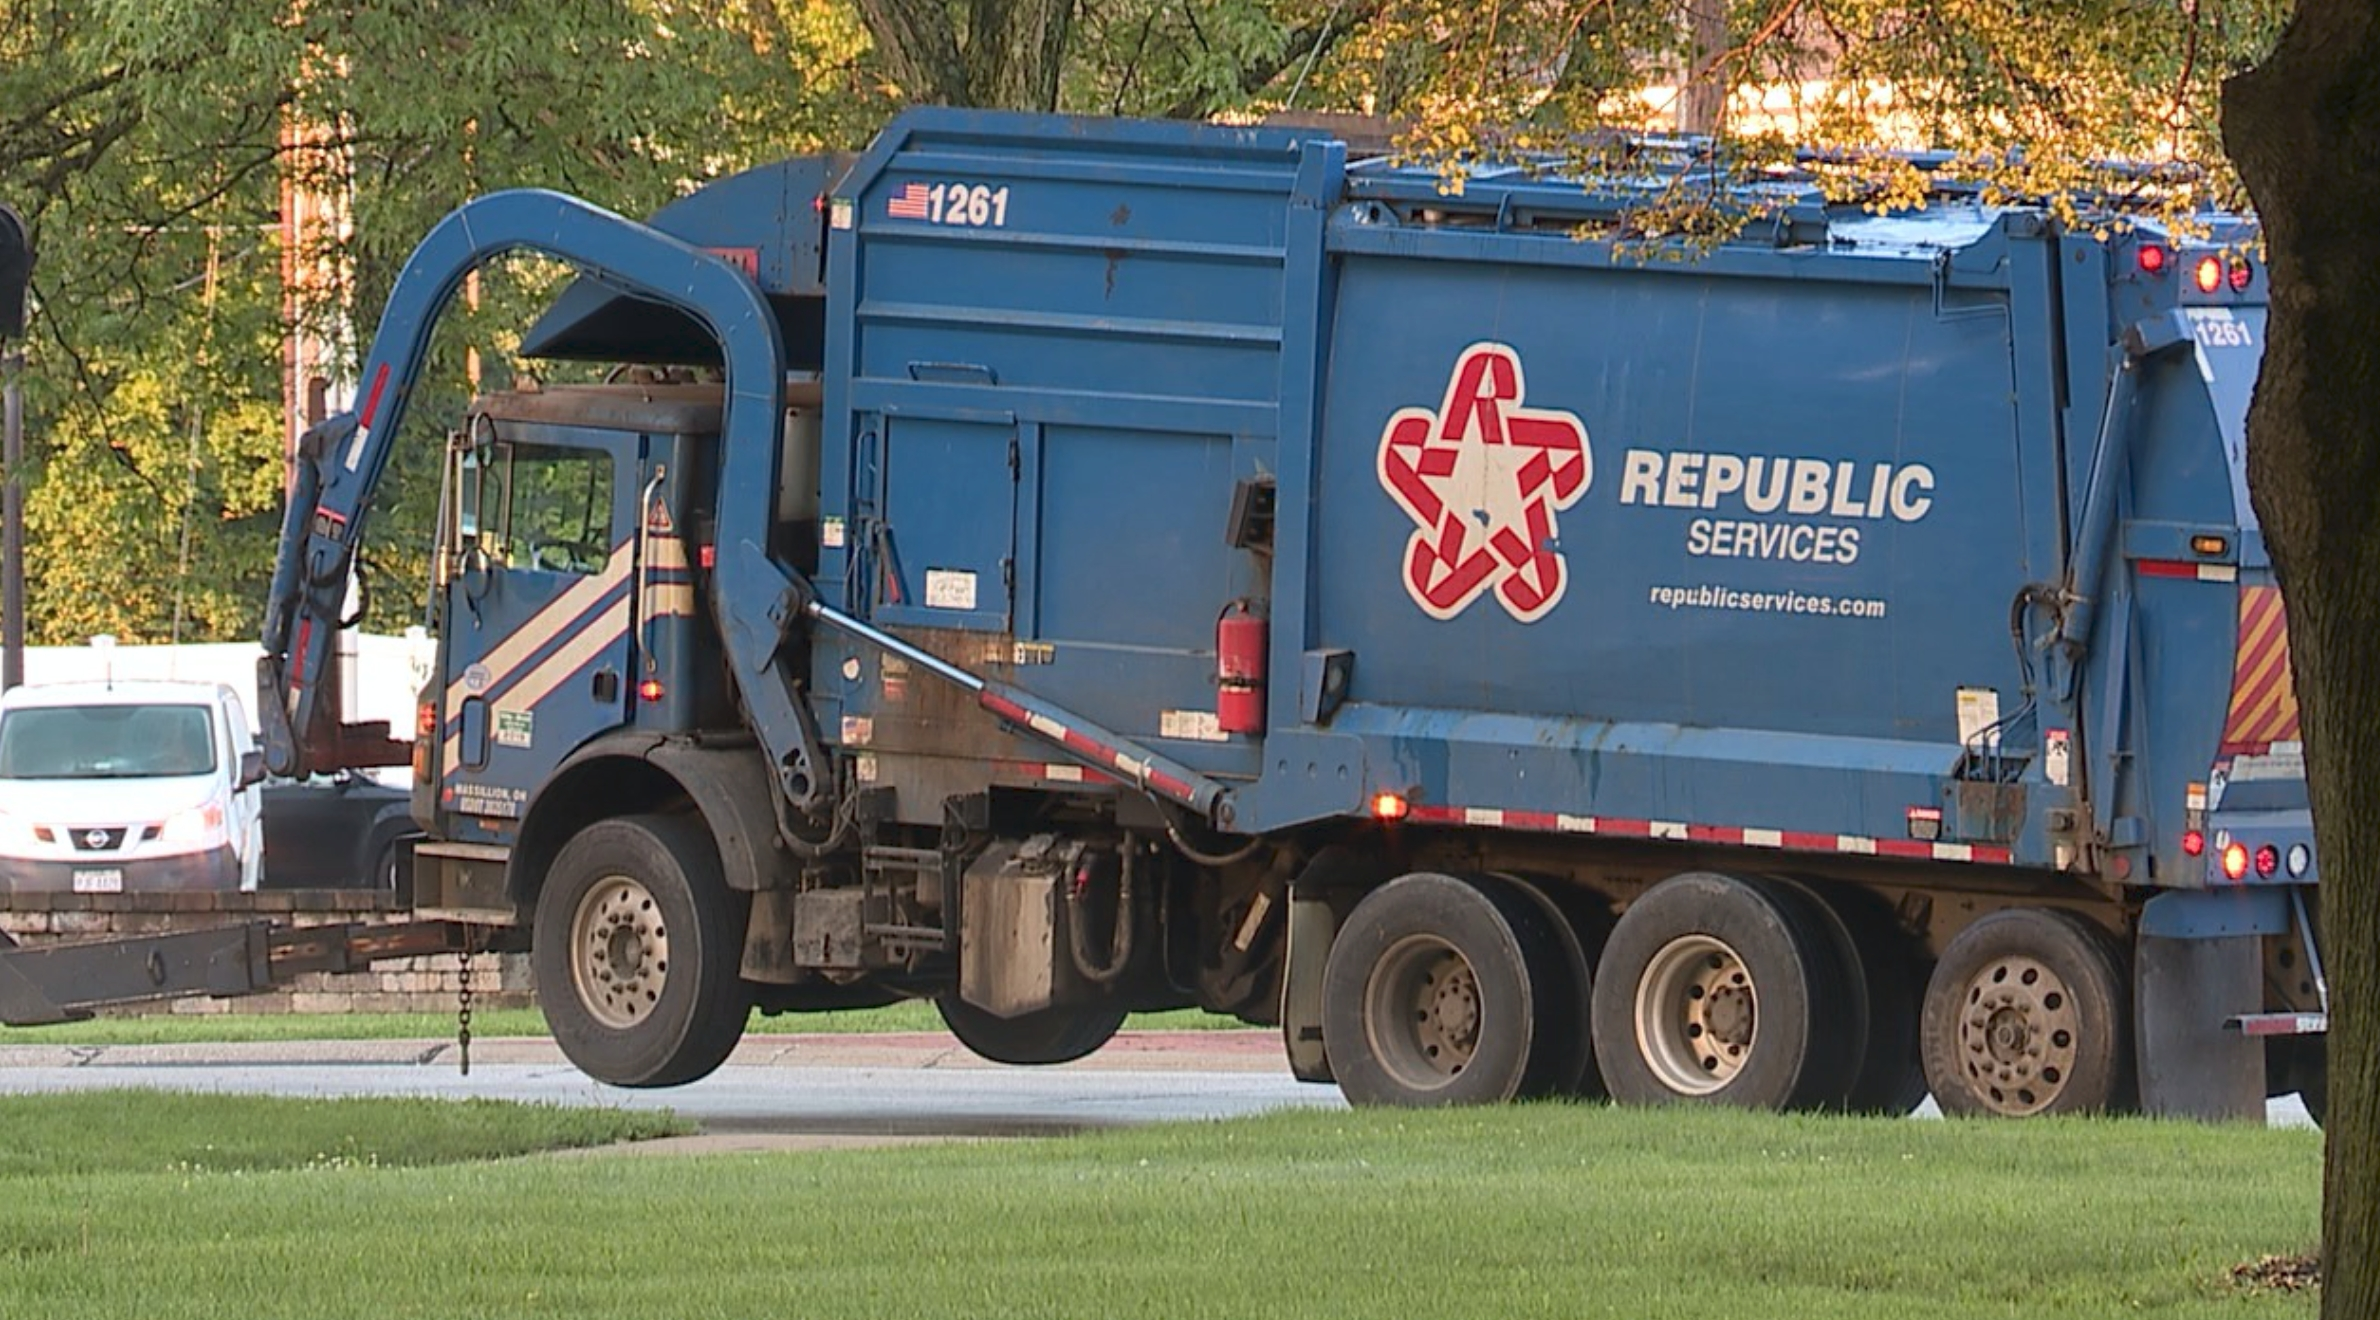 Willoughby Reminds Residents Of Changes In Trash Collection